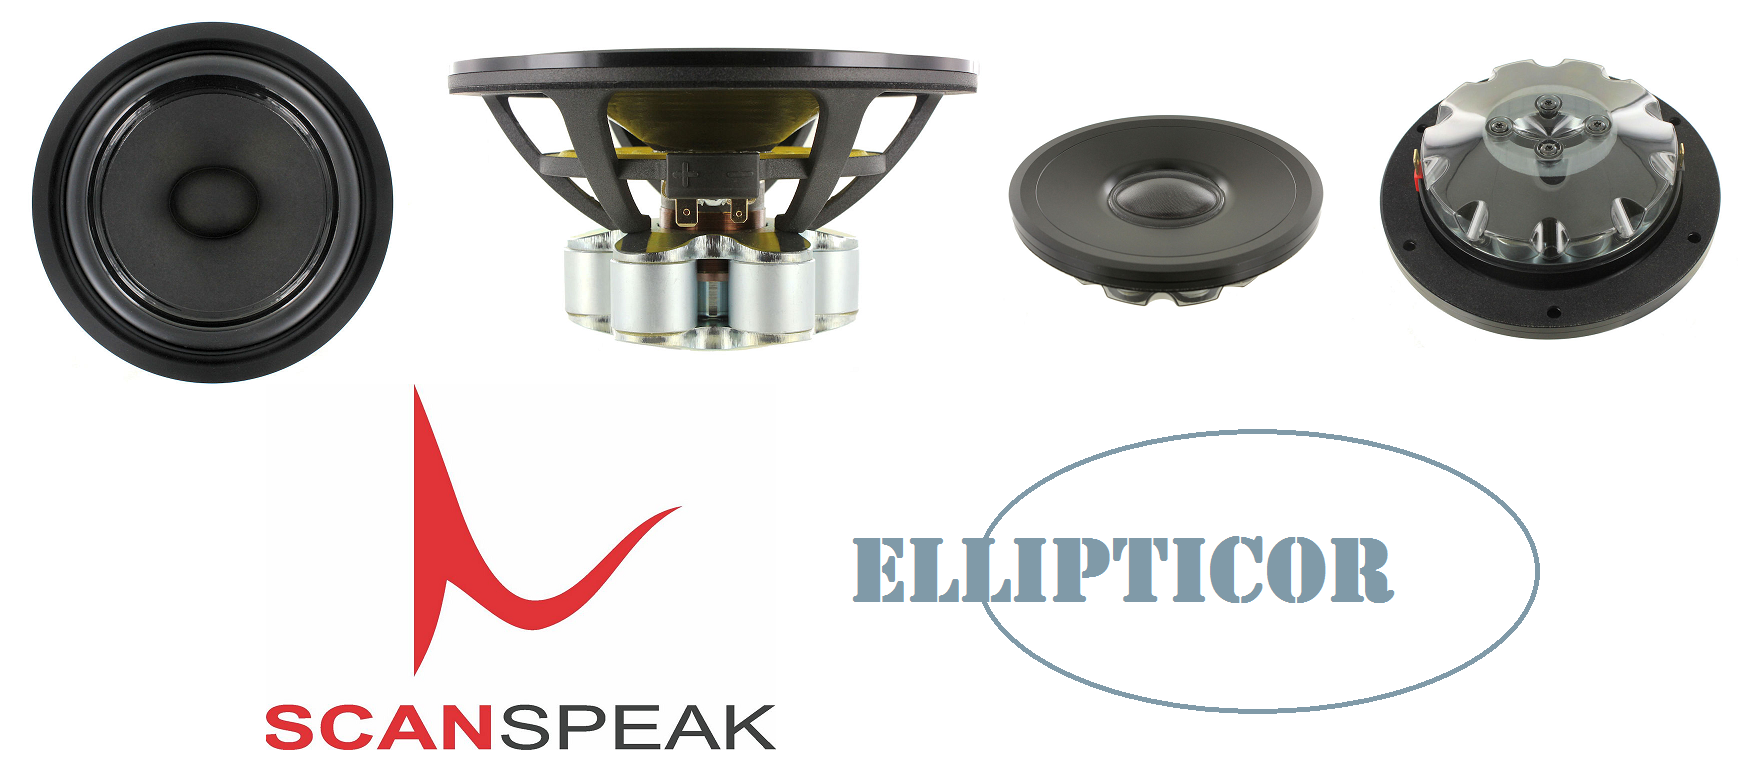 Scan Speak New Ellipticor Series